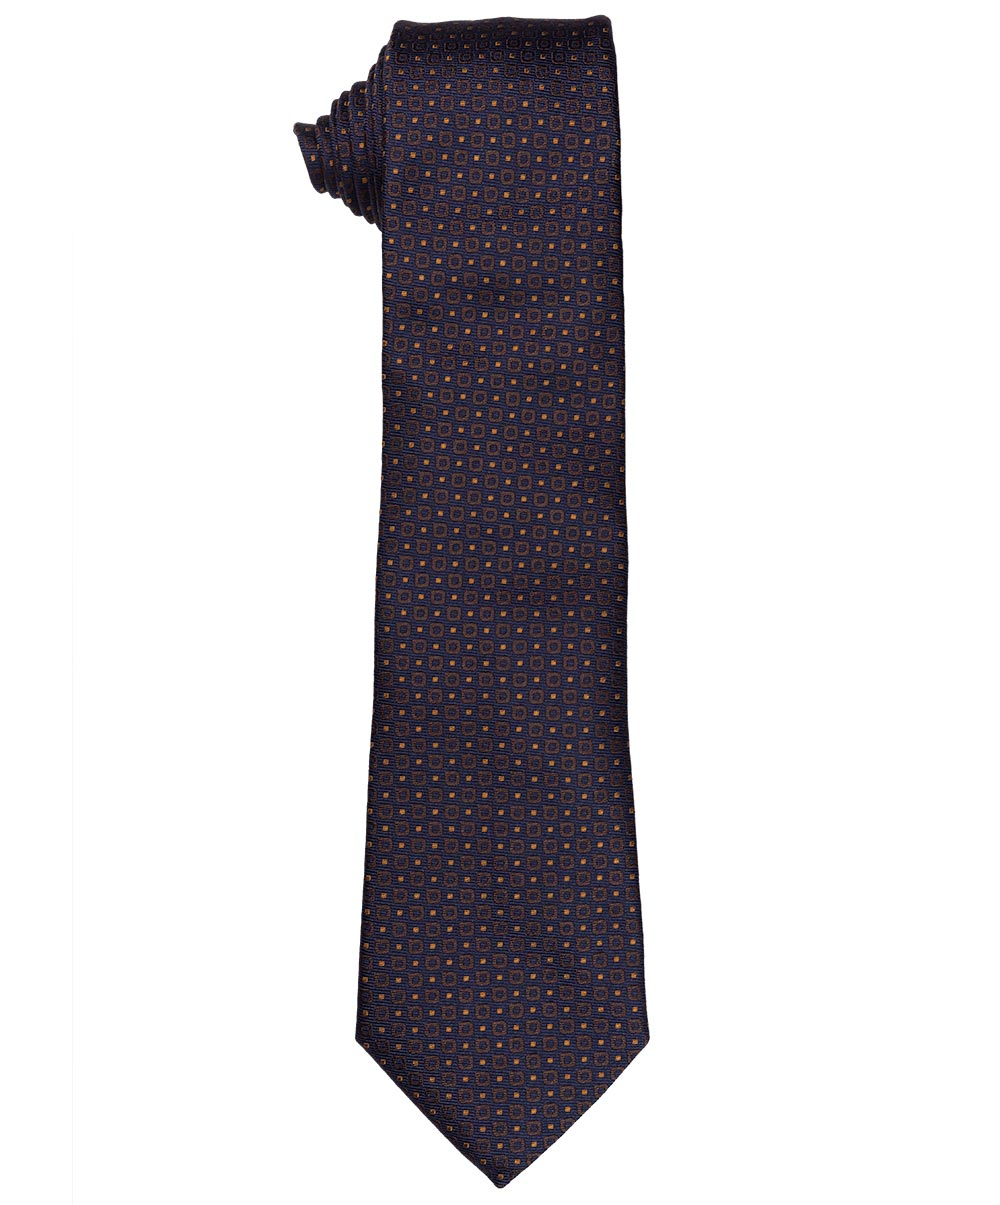 8.0cm Navy/Cognac Pindot on Textured Ground Jacquard Tie